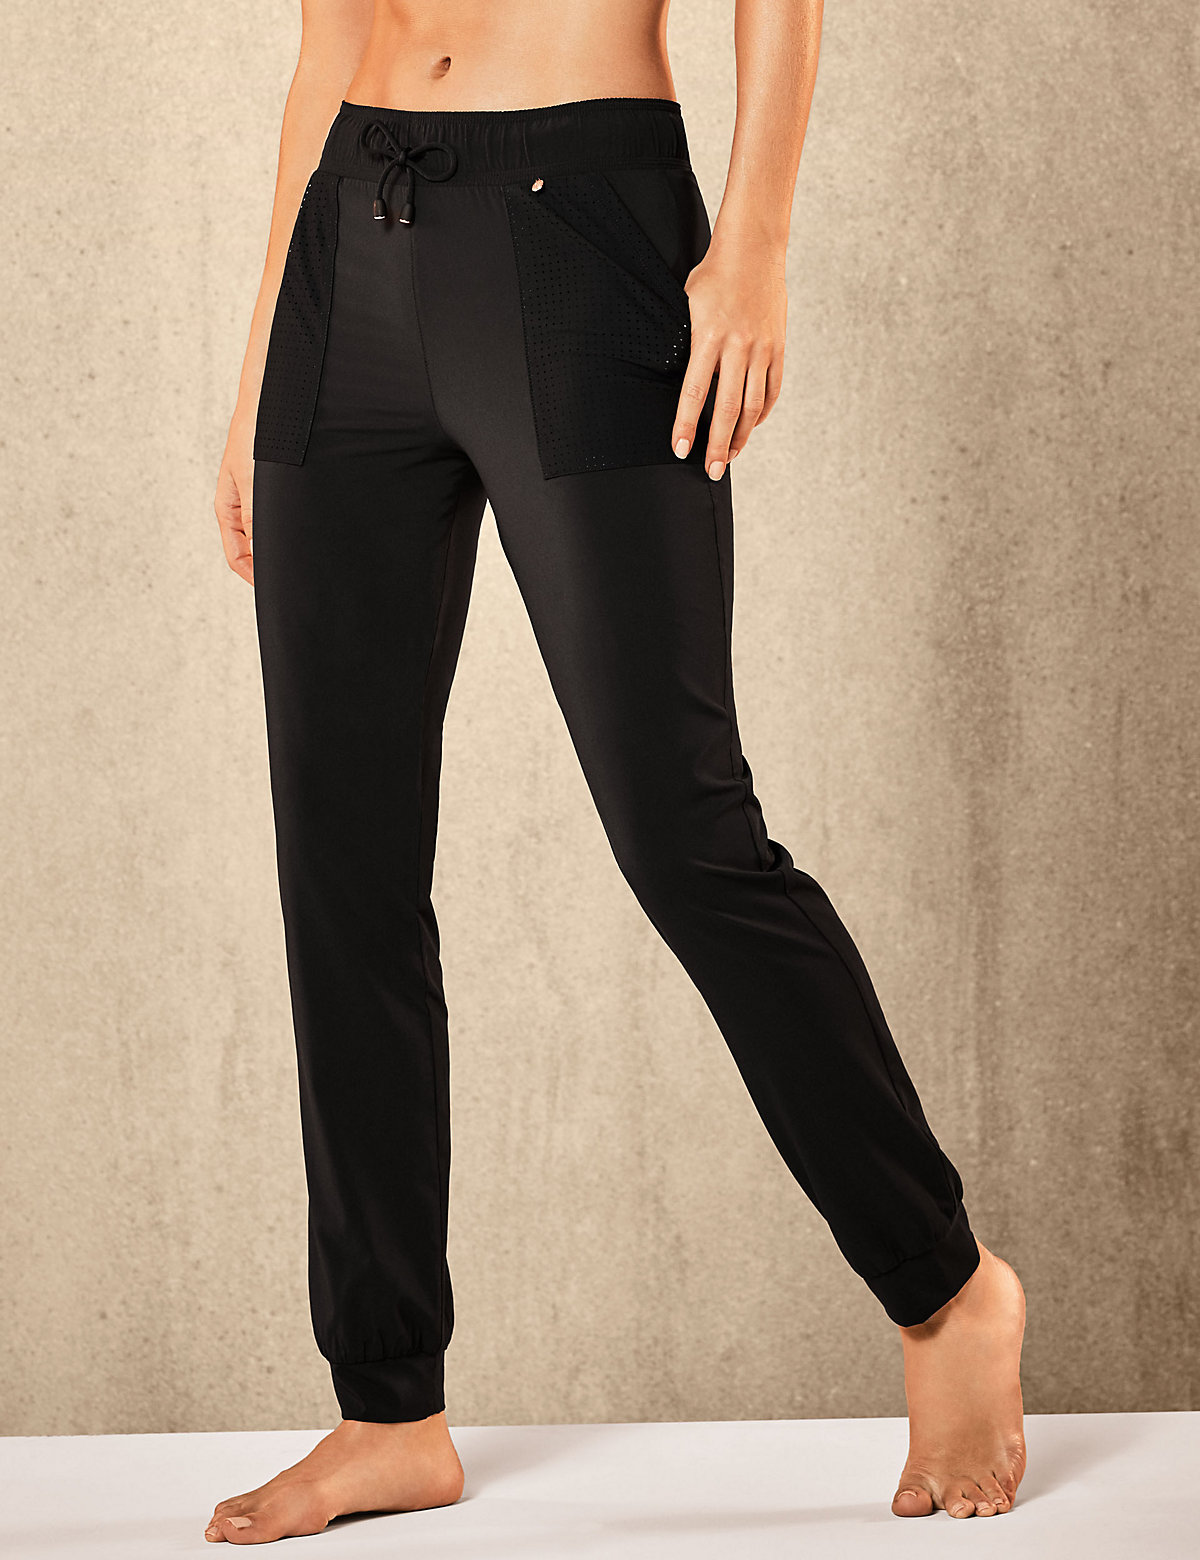 Rosie for Autograph Active Woven Punch Hole Joggers